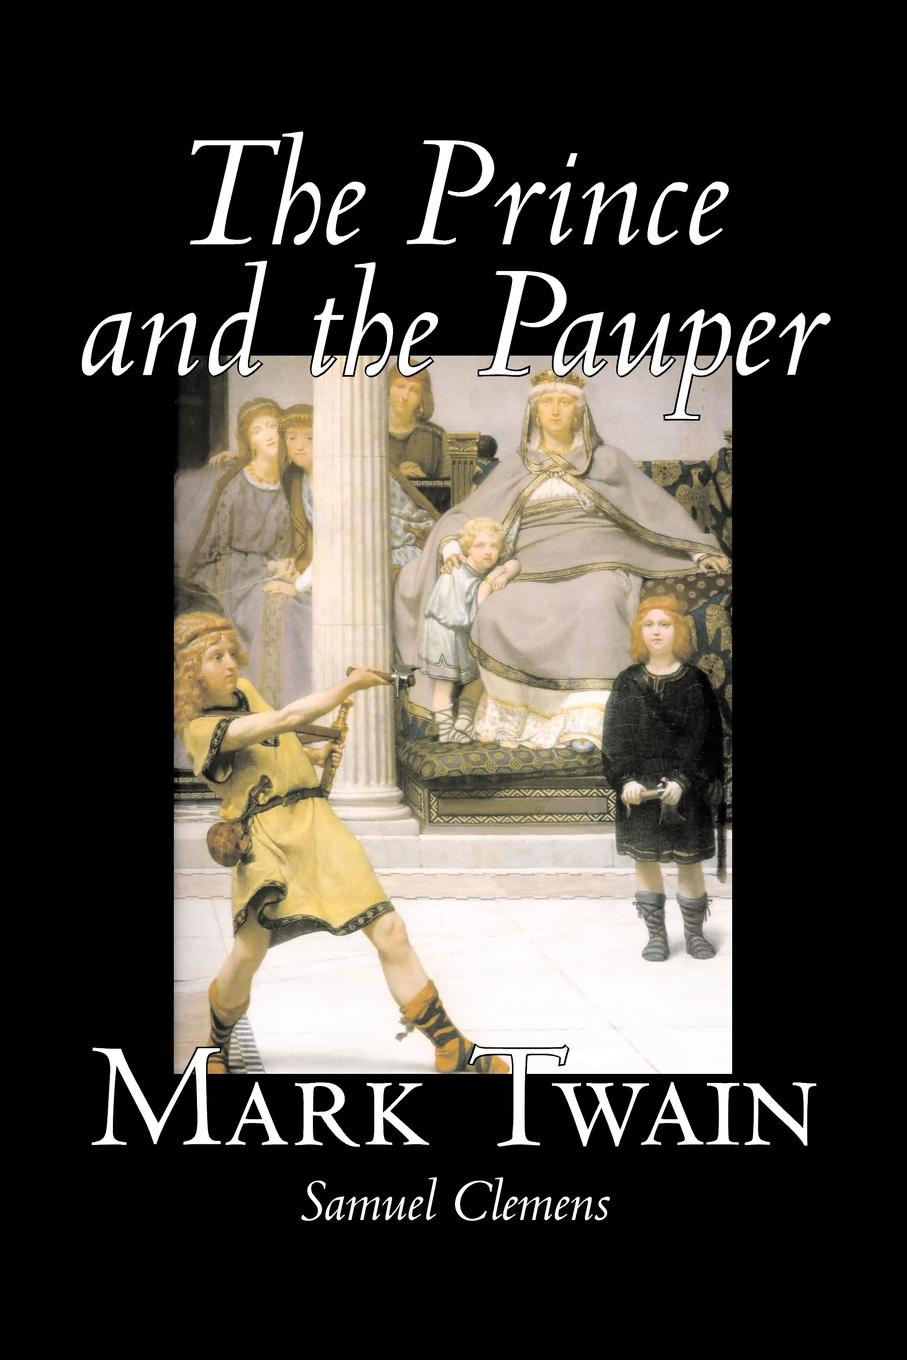 Mark Twain The Prince and the Pauper by Mark Twain, Fiction, Classics, Fantasy & Magic twain m the prince and the pauper принц и нищий на англ яз twain m